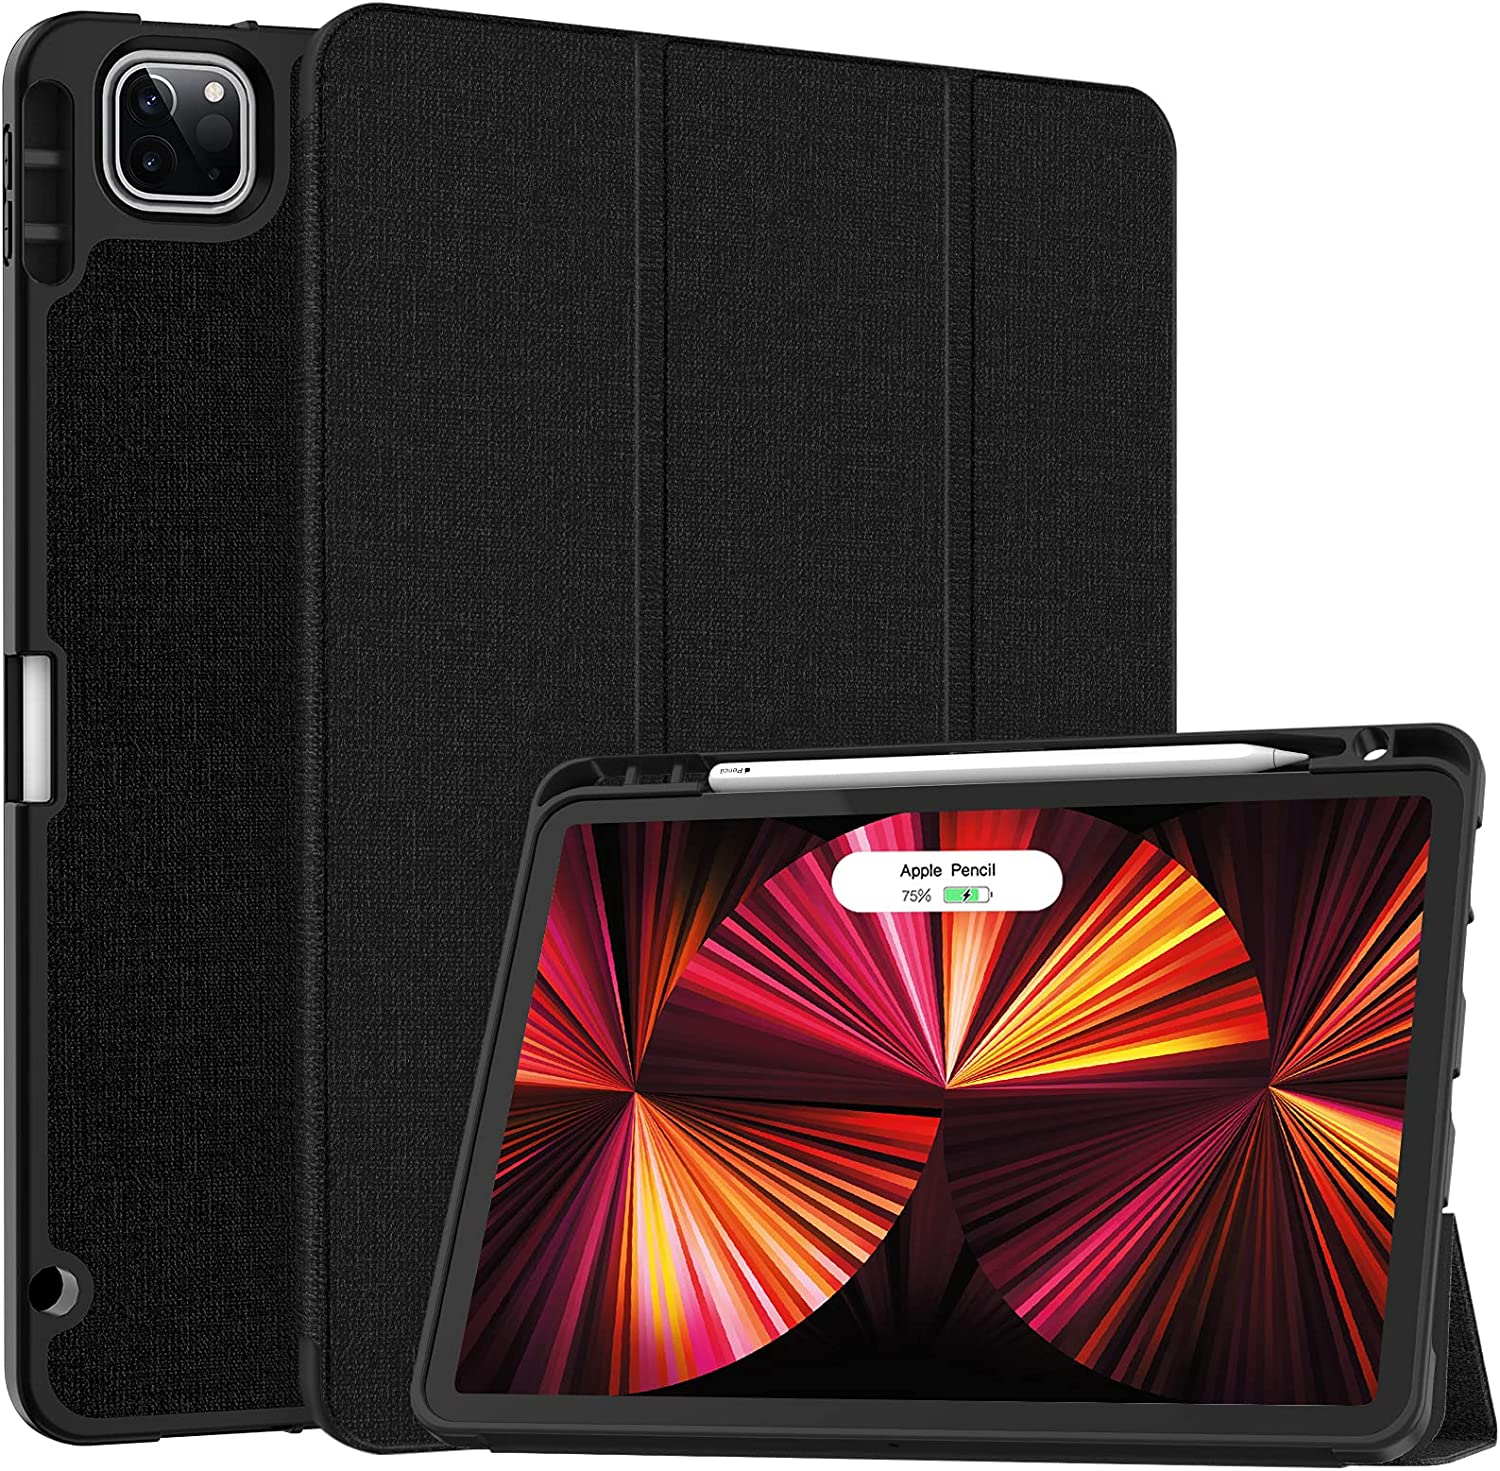 Soke New iPad Pro 11 Case 2021 with Pencil Holder - [Full Body Protection + 2nd Gen Apple Pencil Charging + Auto Wake/Sleep], Soft TPU Back Cover for 2021 iPad Pro 11 inch(Black)